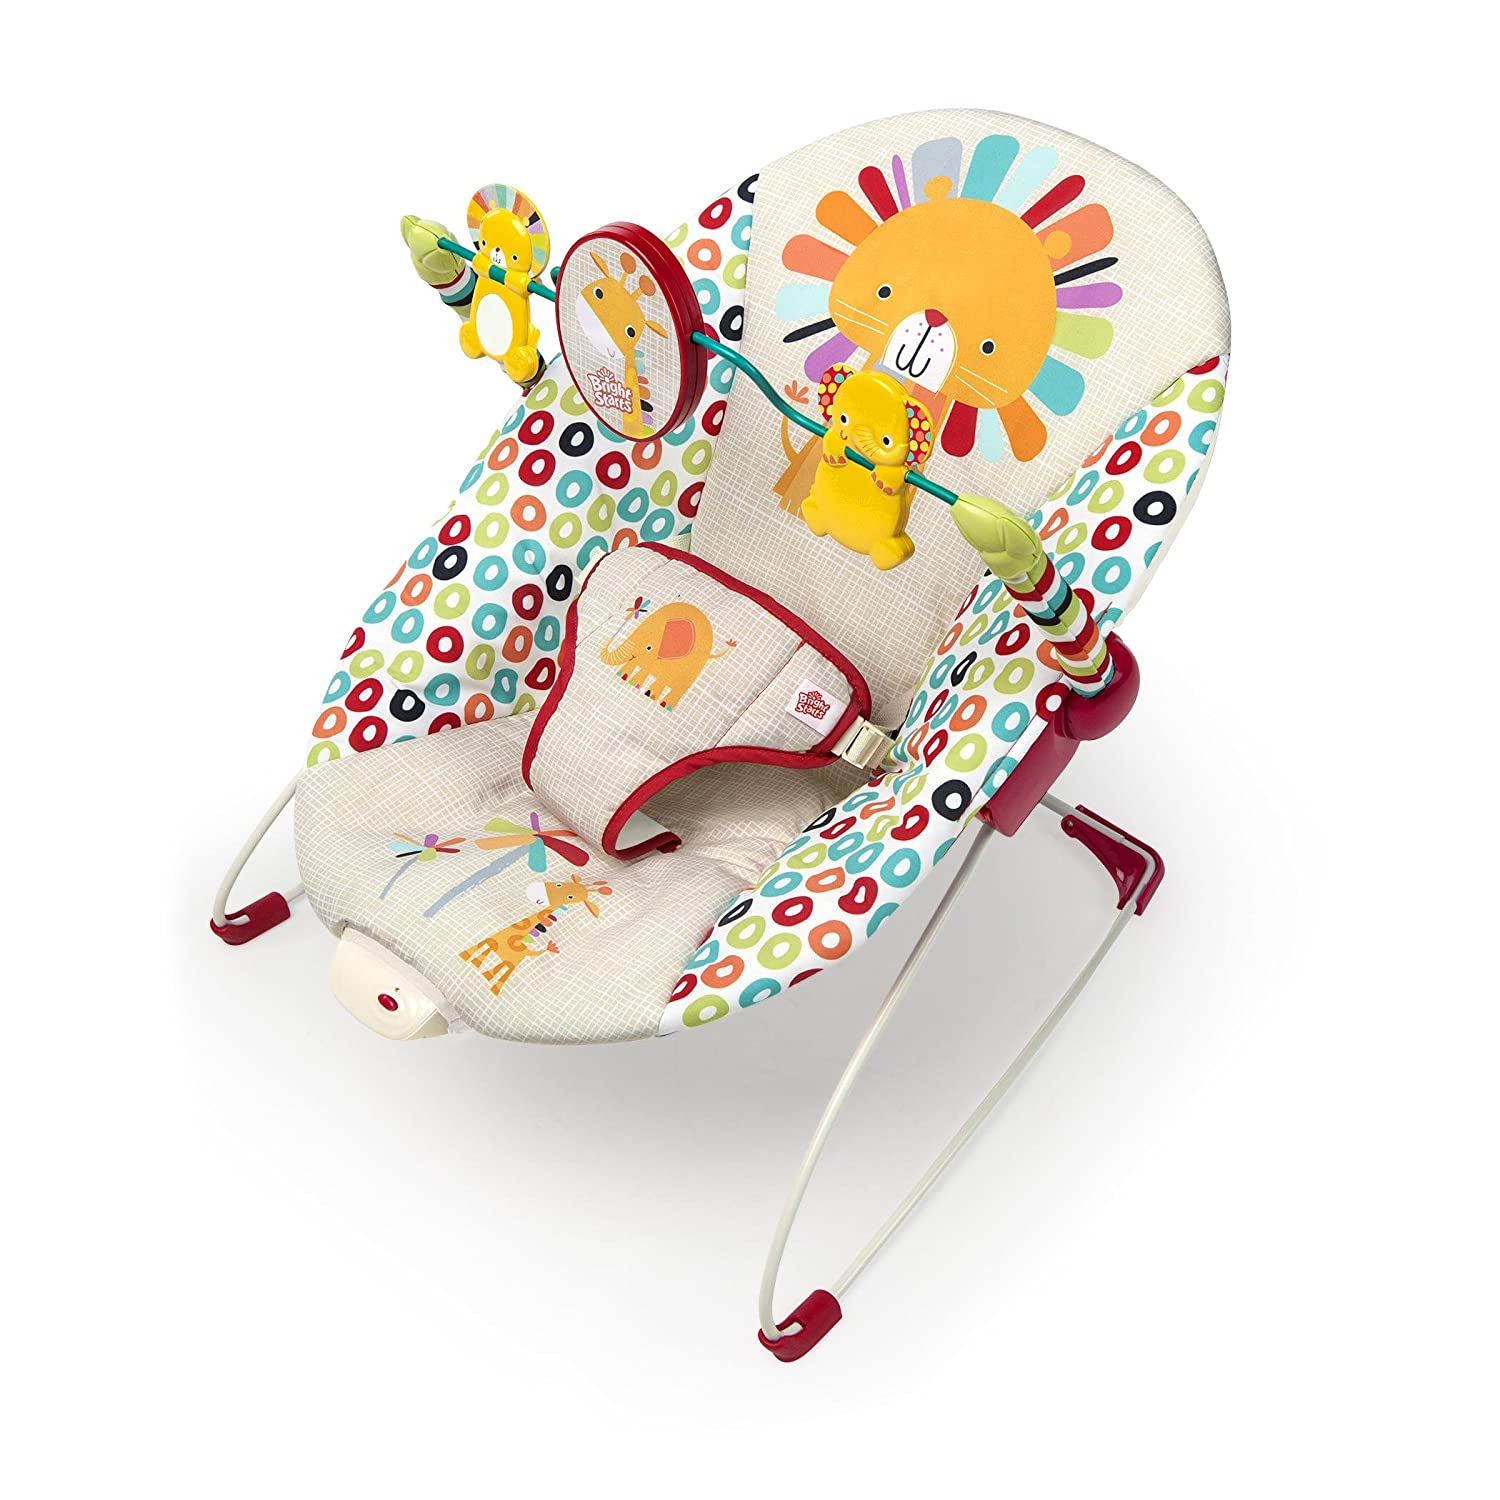 Bright Starts Playful Pinwheels Bouncer Multi-Color Safari Baby Vibrating Seat